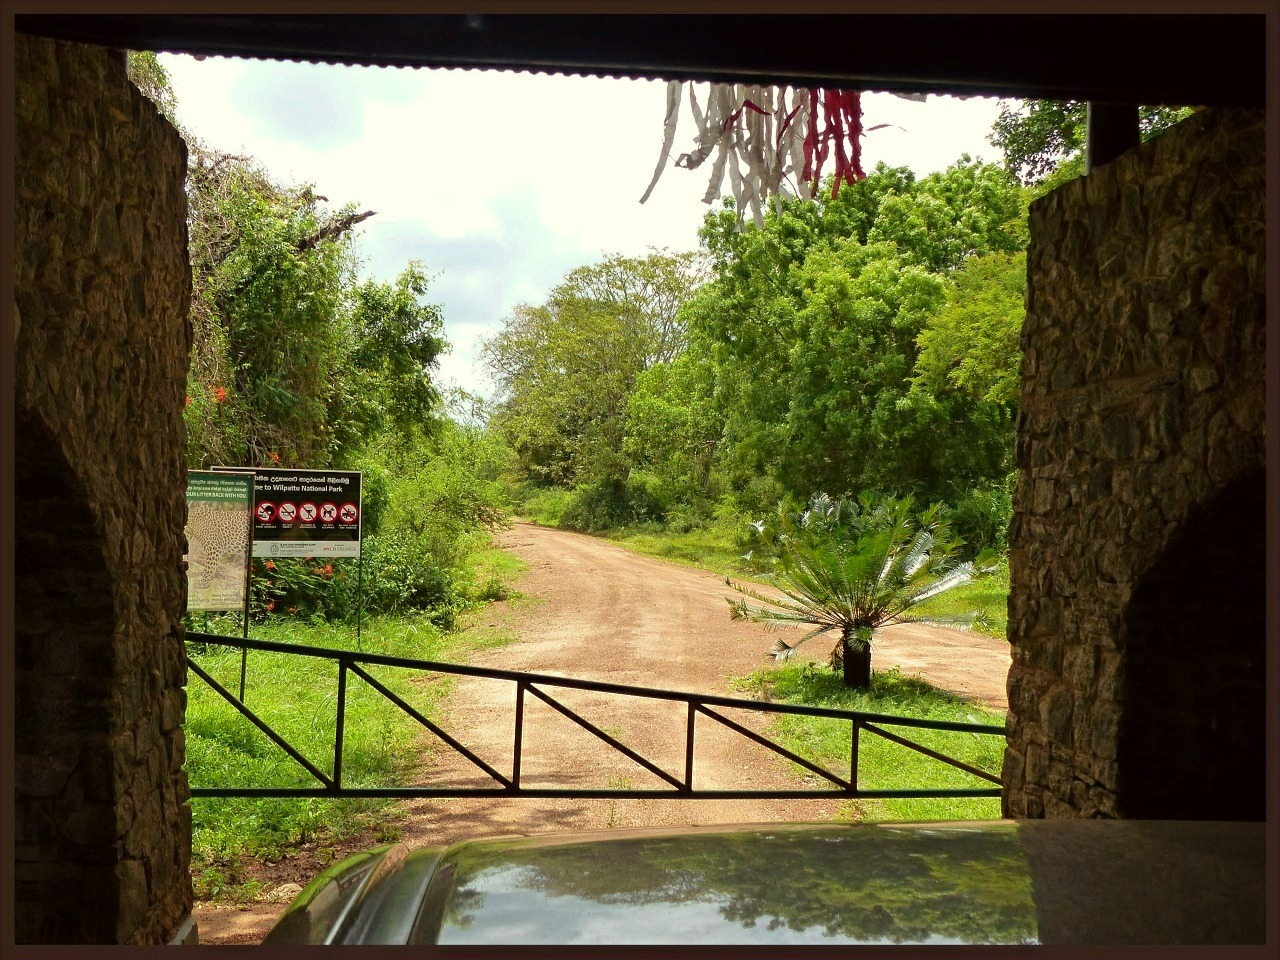 Entry to the Park